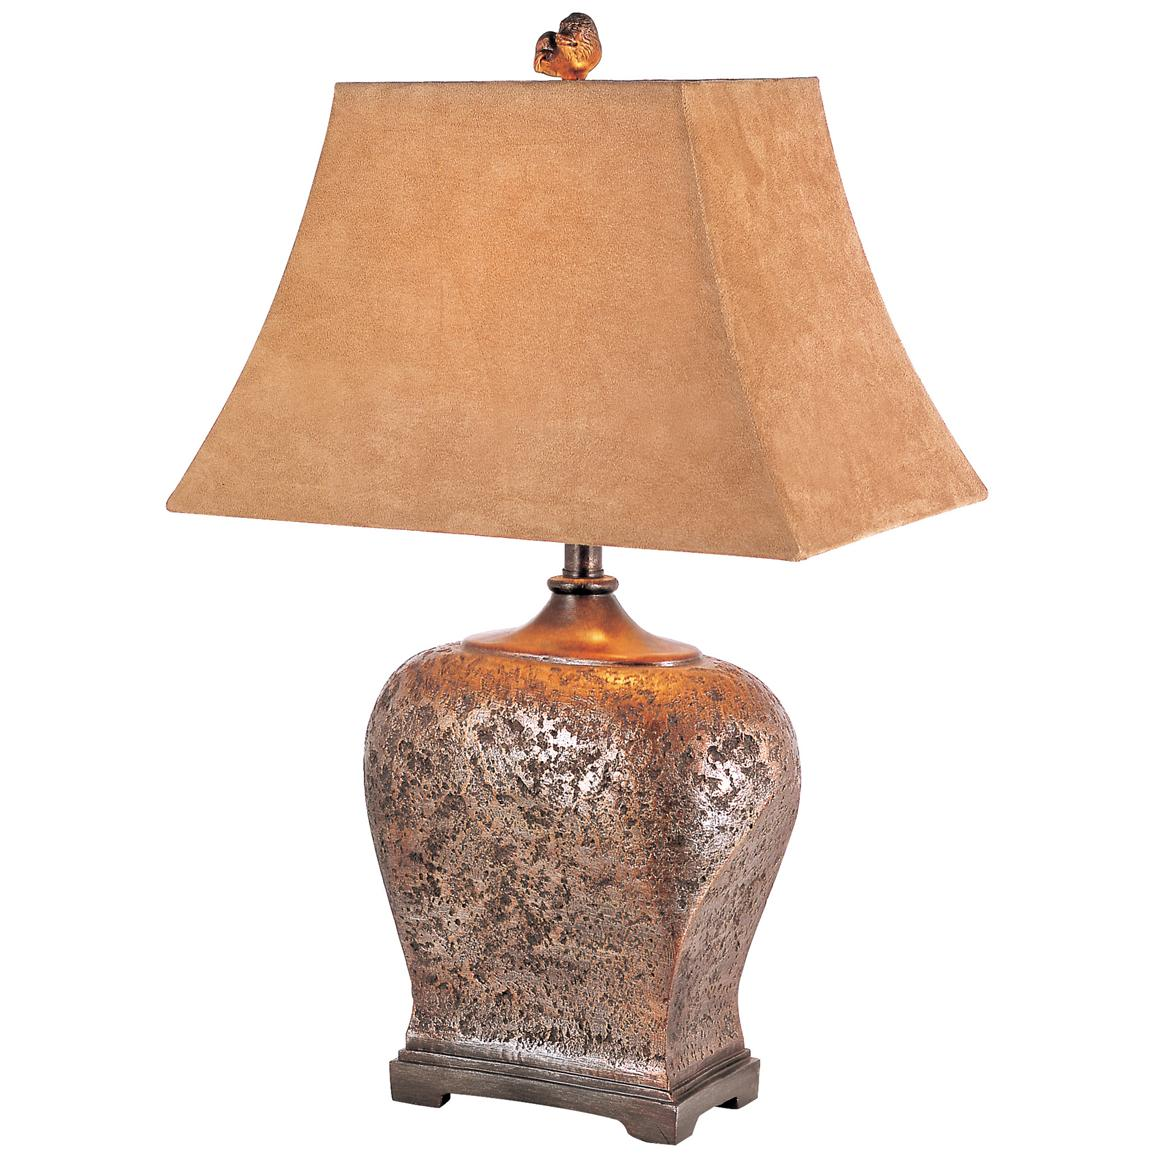 Trans Globe Lighting® Rustic Tanned Table Lamp